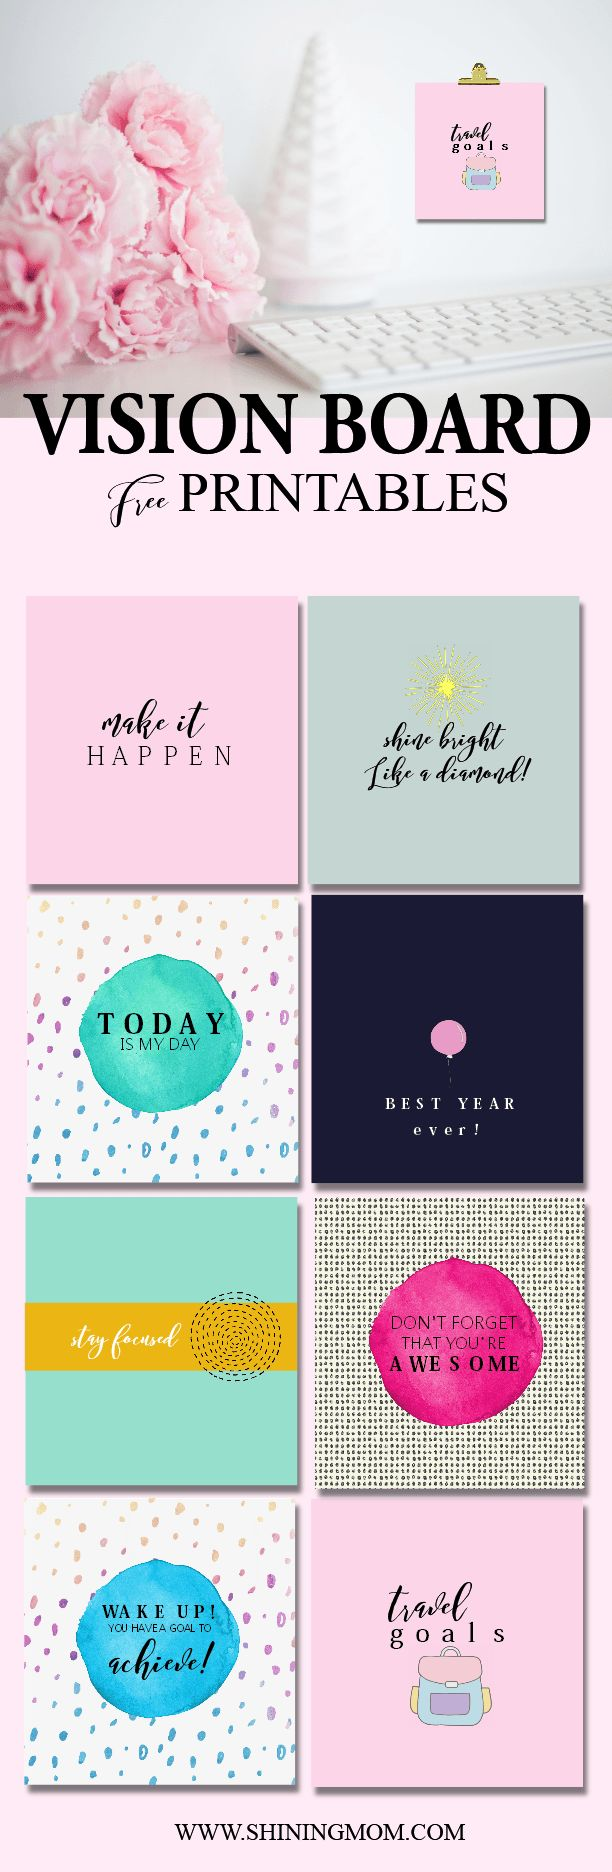 Get this free printables for your vision board! They will inspire you to roll up your sleeves and start chasing your dreams!